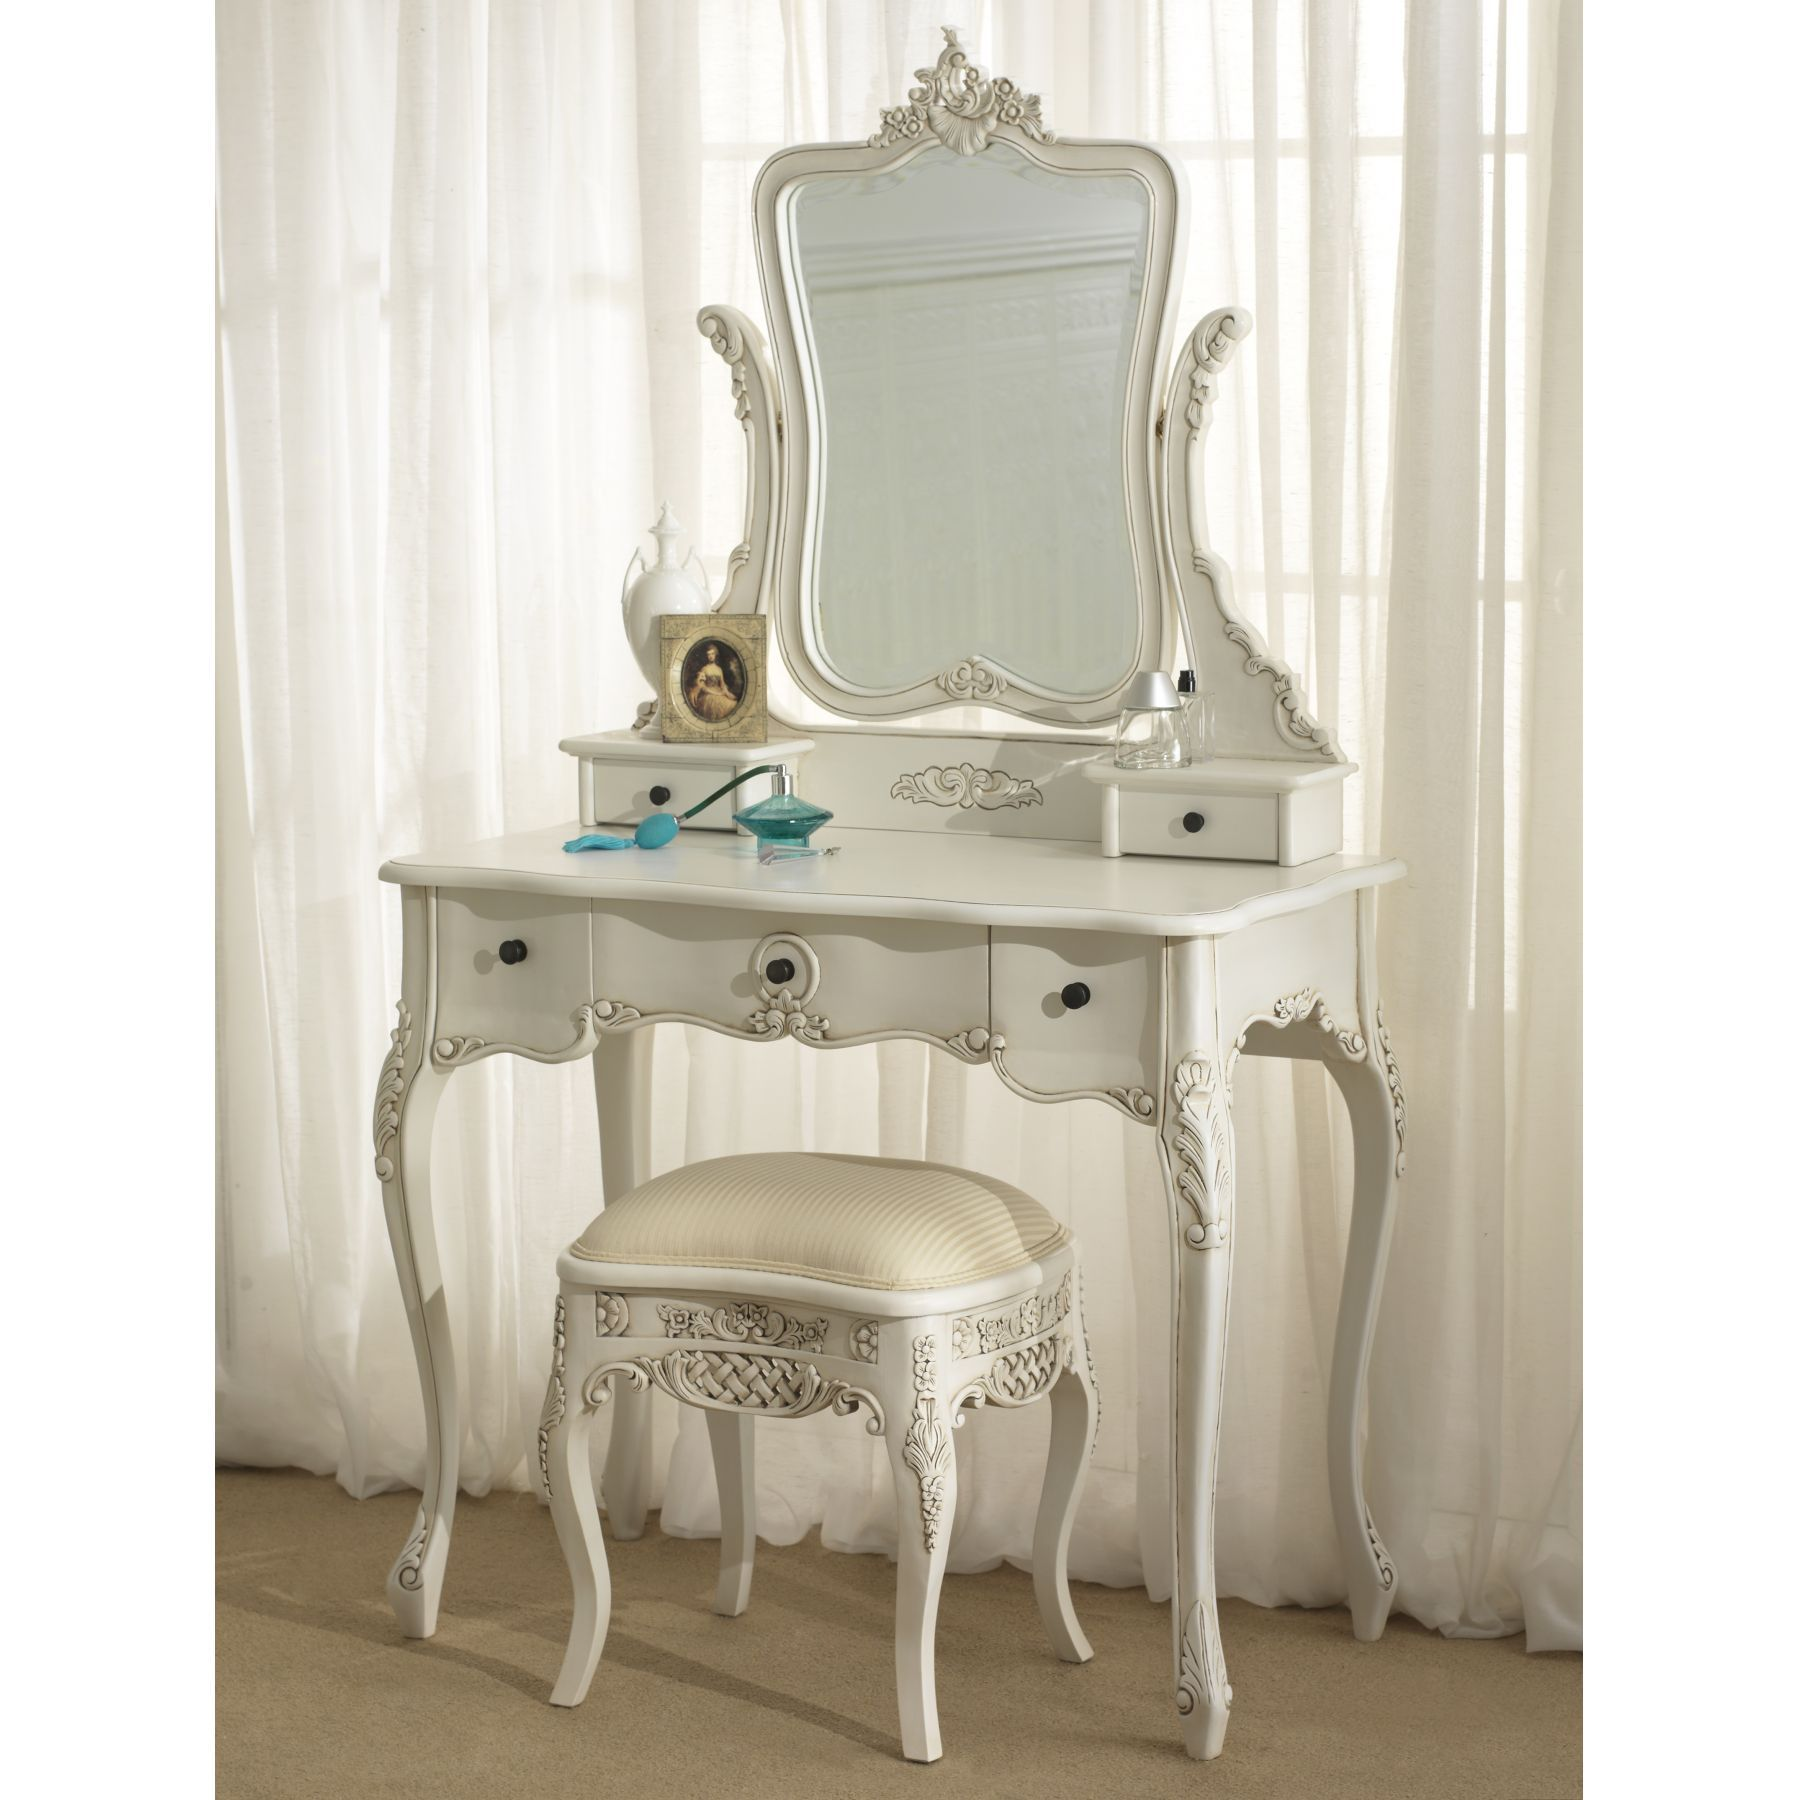 Bedroom furniture dressing table - Antique French Dressing Table Set Ref La La La Rochelle Antique